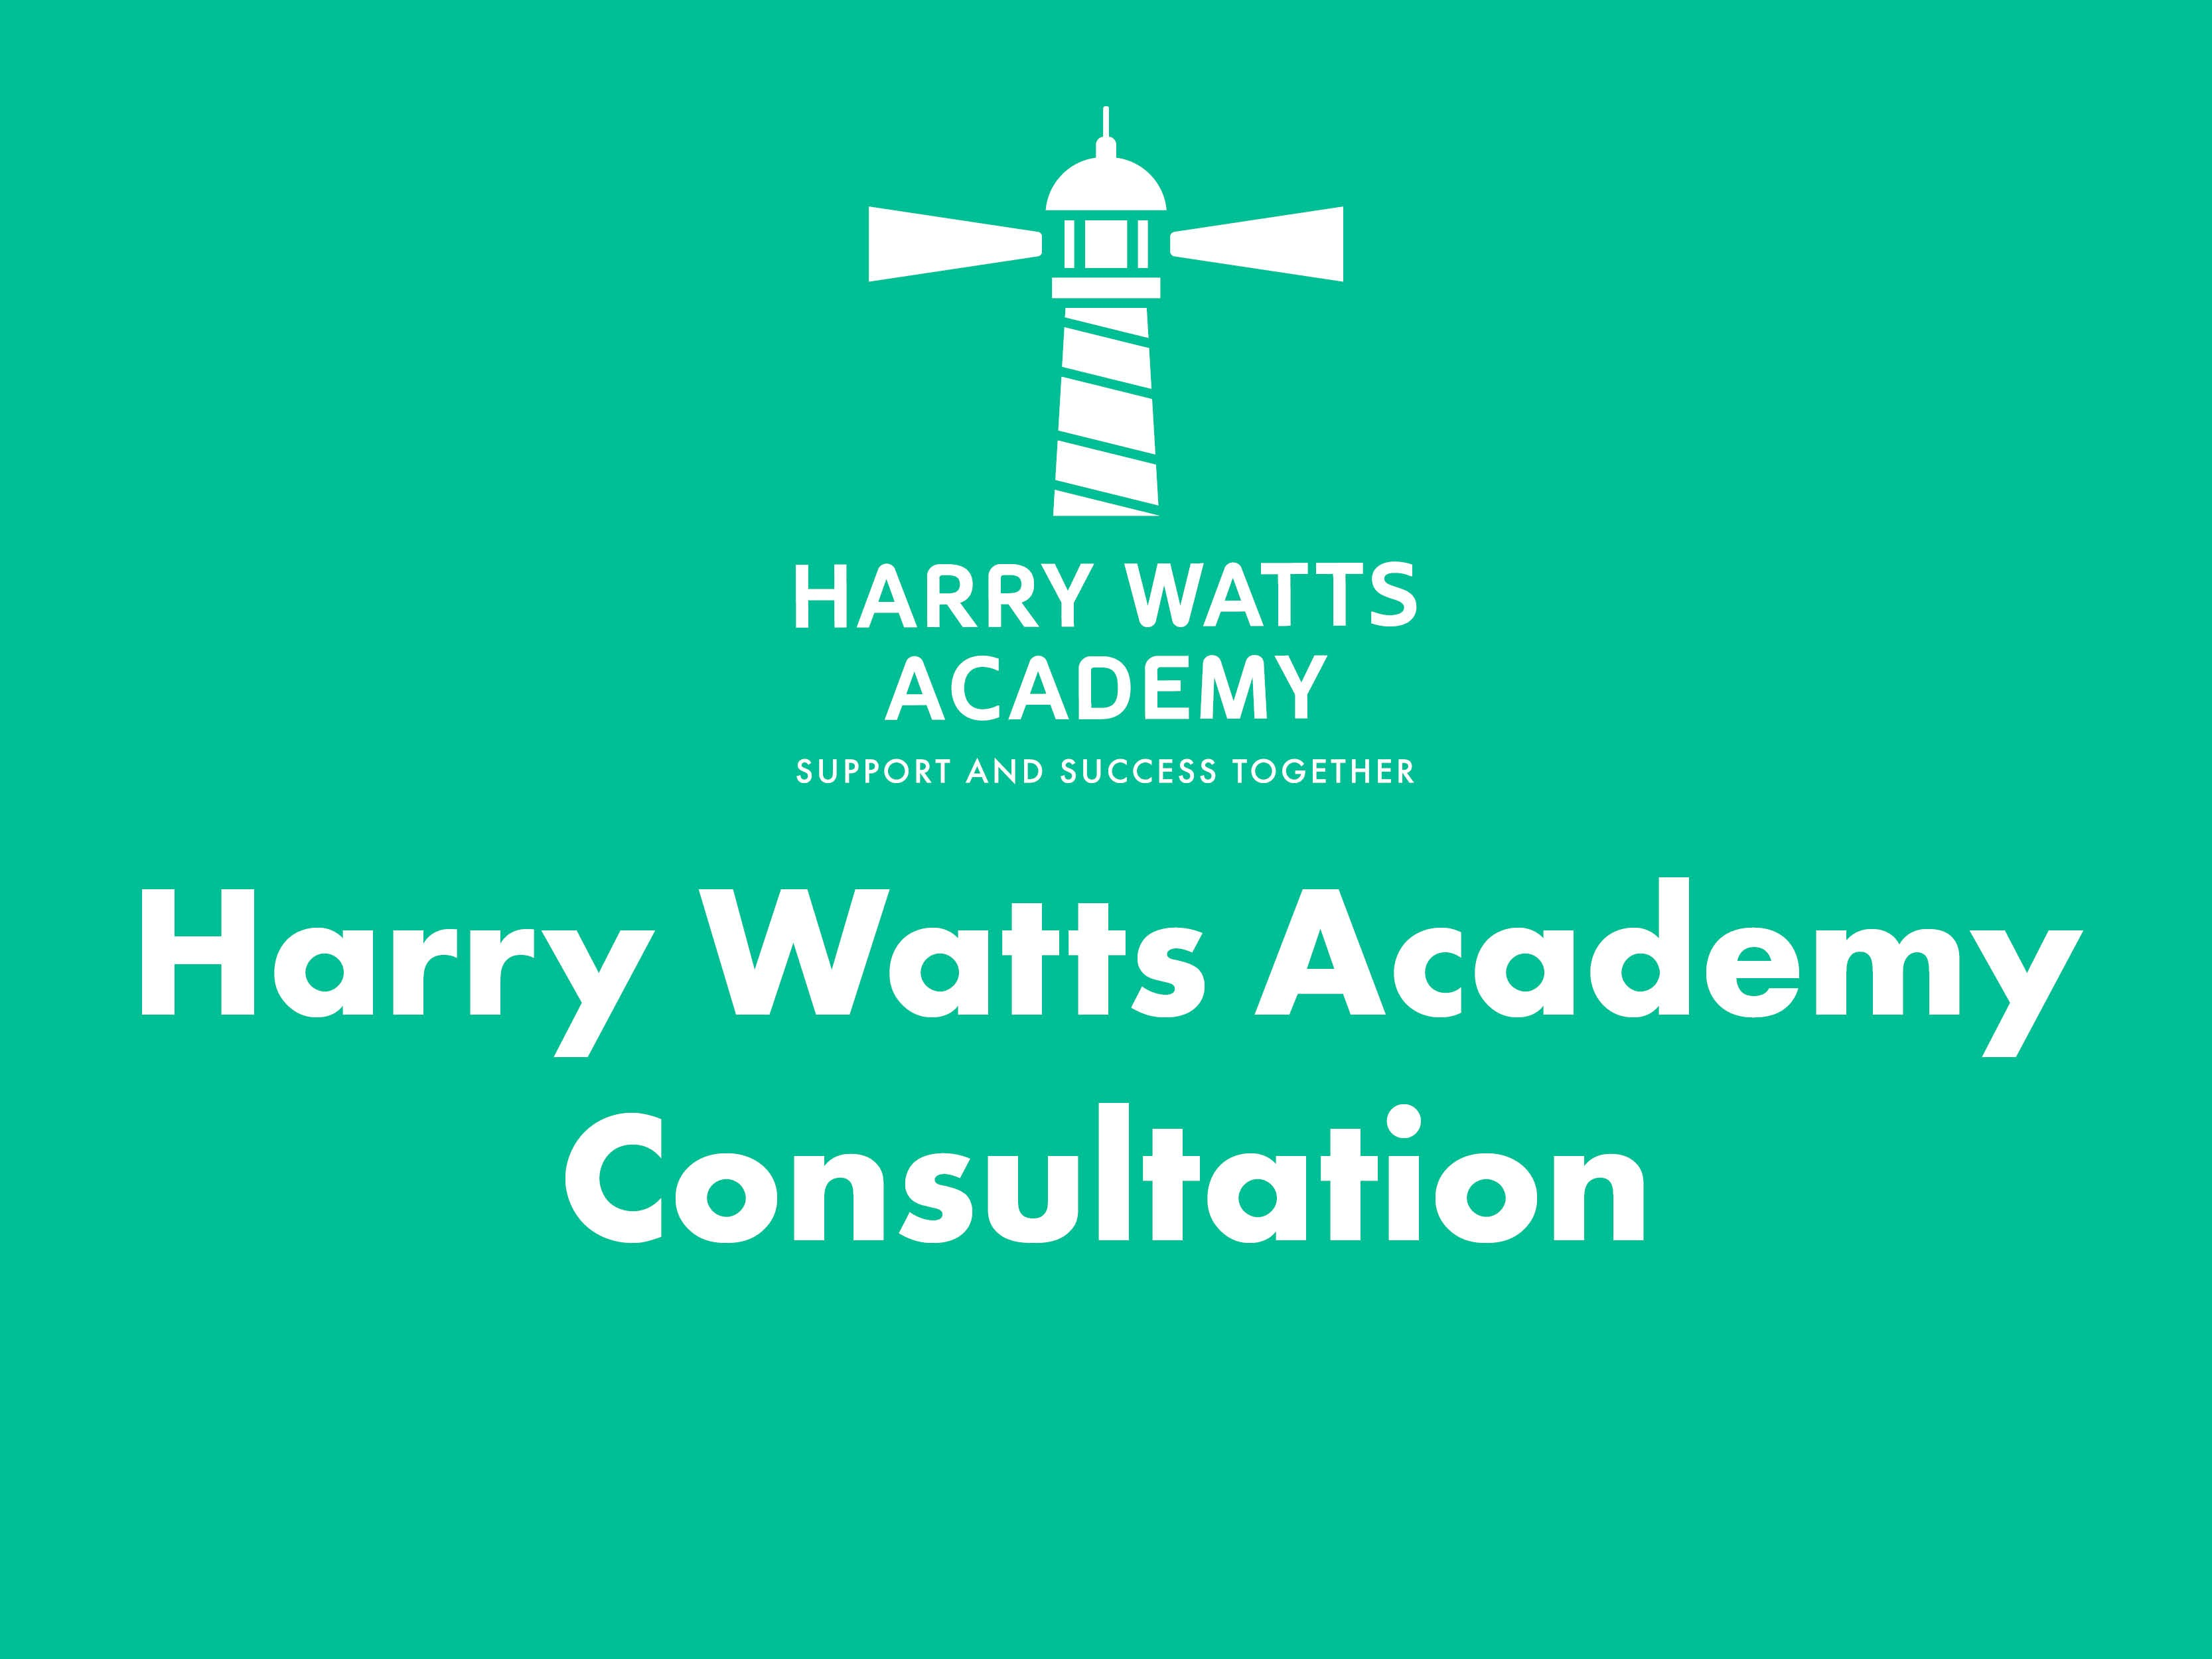 Consultation to Increase Pupil Numbers for Harry Watts Academy at Harraton